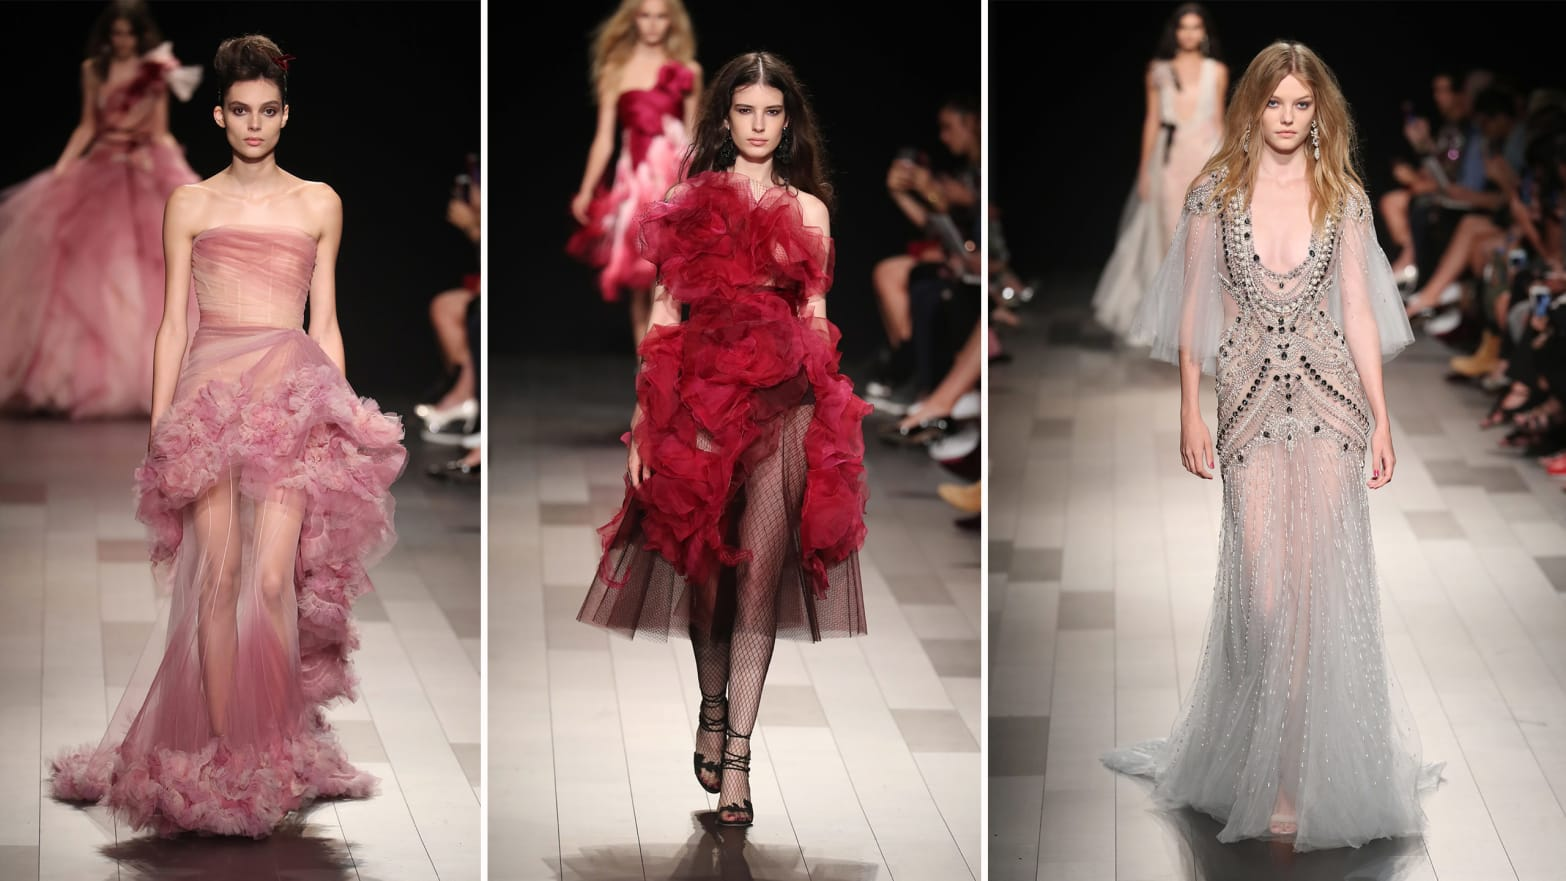 The Perfect Designer For a Disney Princess: NYFW Reviews of Marchesa and Zang Toi